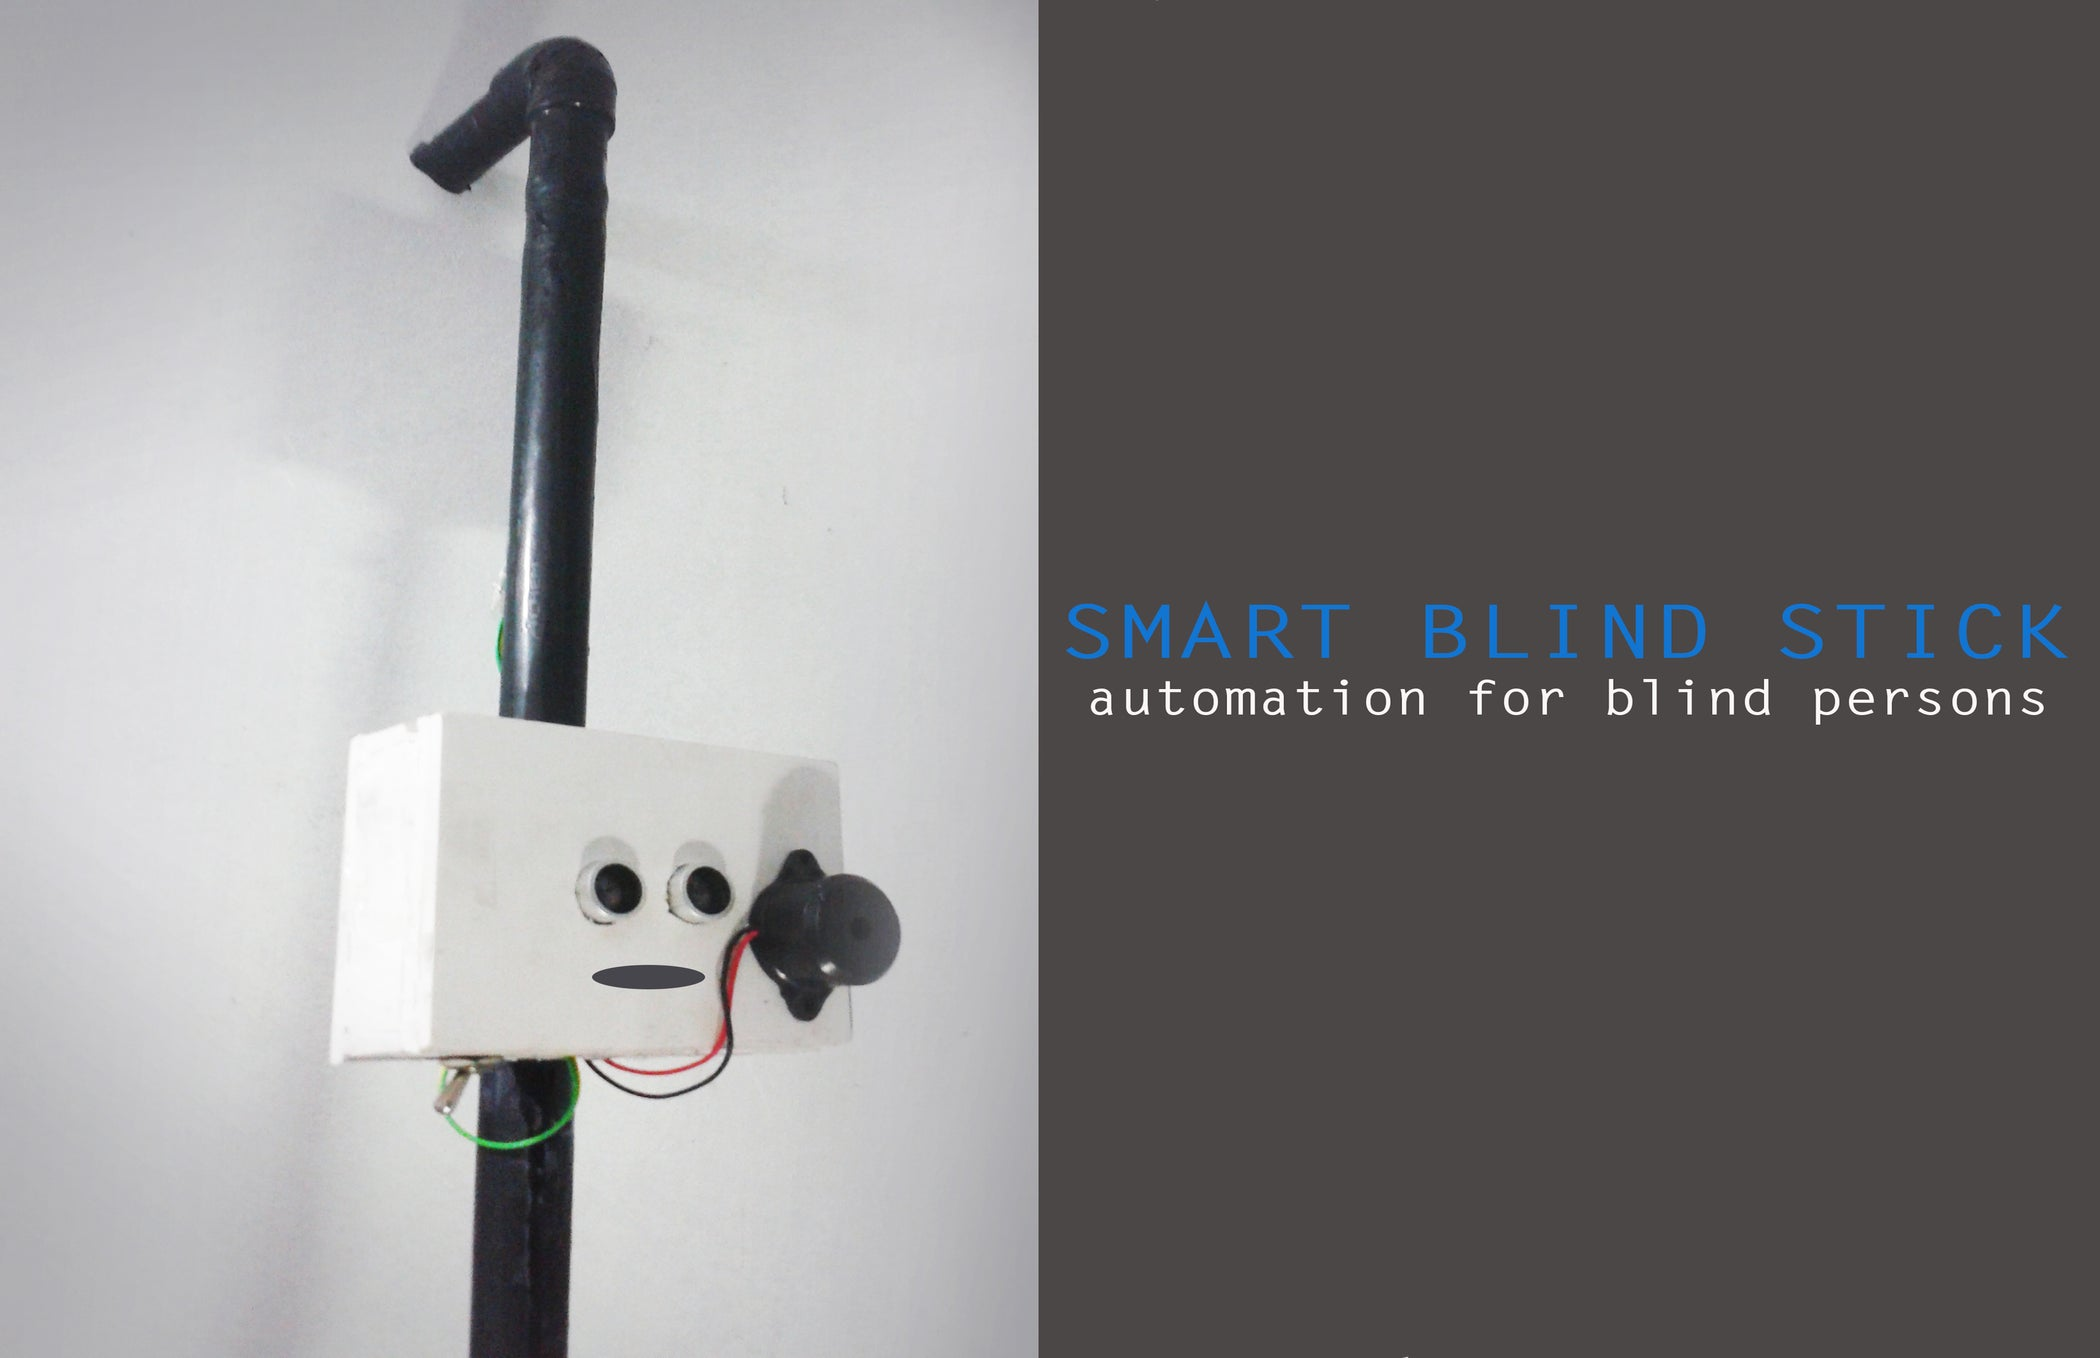 Diy Smart Blind Stick Using Arduino 7 Steps With Pictures Circuit Uses The Fire Feeds About 9v See And Read To Add